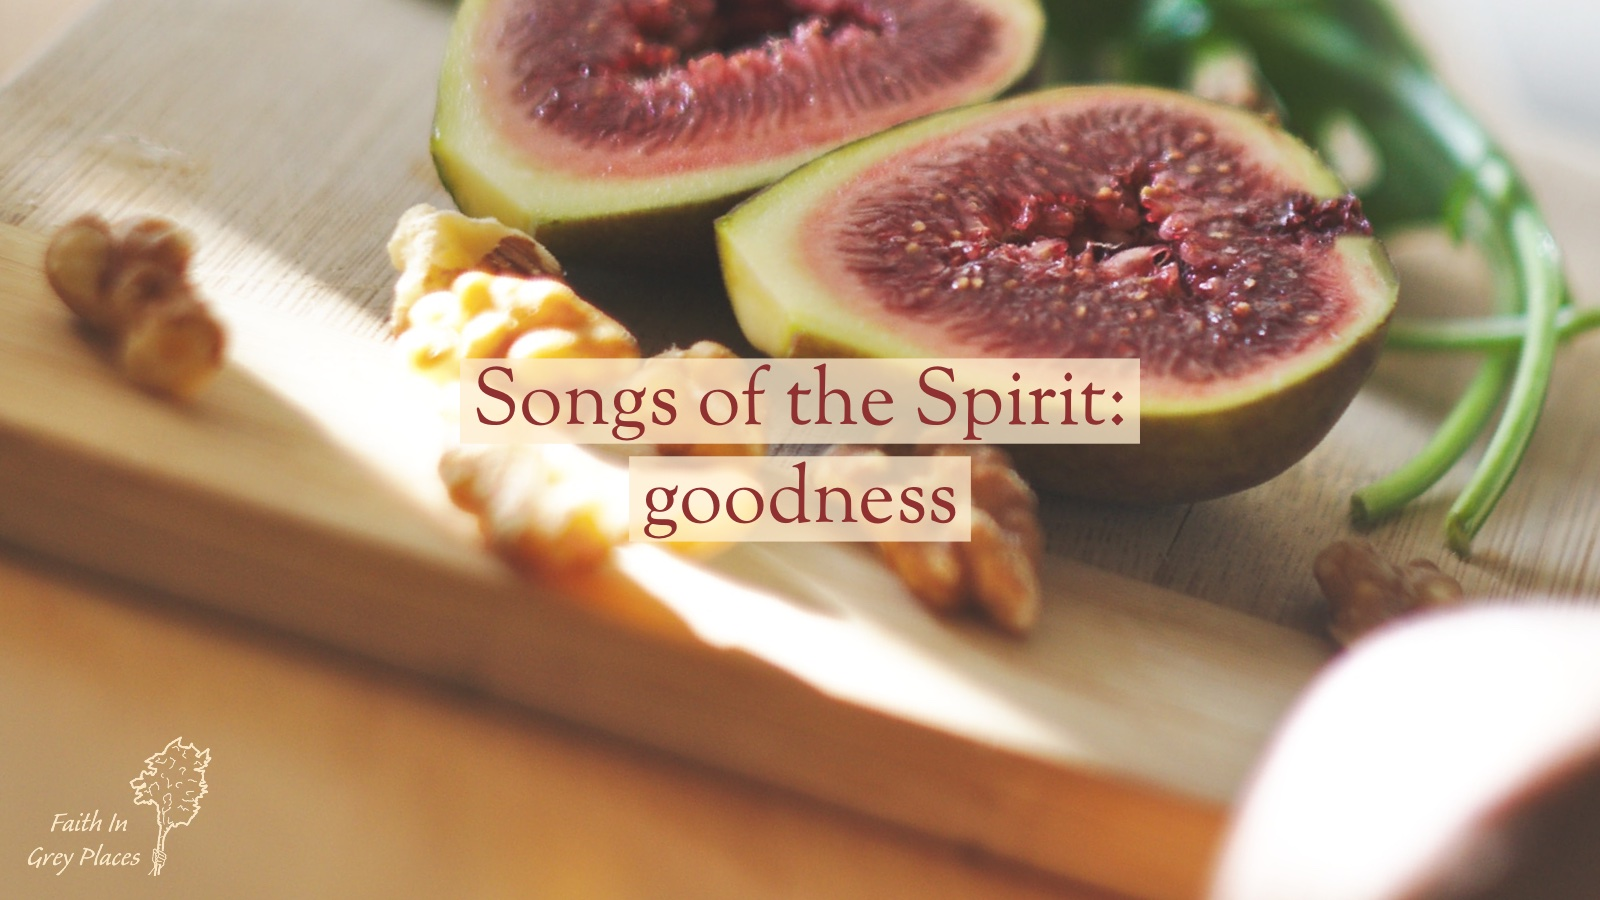 Close up image of a fresh fig cut in half on a wooden chopping board with walnut pieces. Words over the top: Songs of the Spirit: goodness, Faith in Grey Places